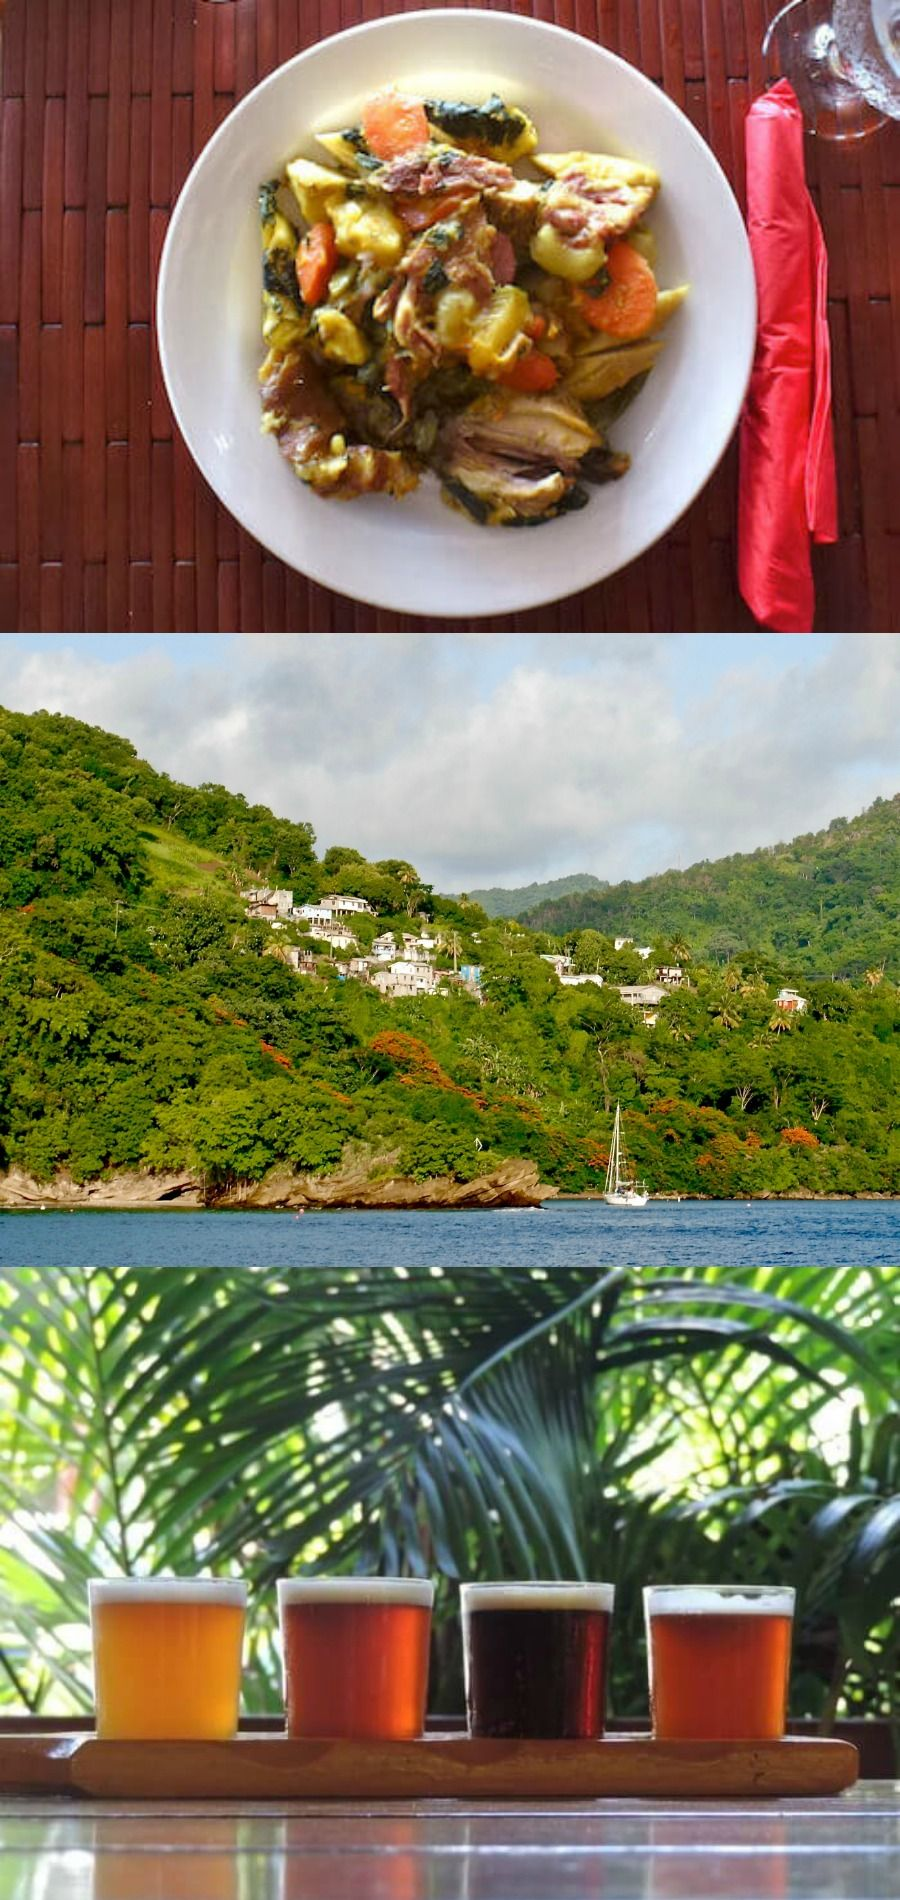 Food lovers rejoice! Here's your total guide full of foodie things to do in Grenada in the Caribbean. Don't read on an empty stomach!